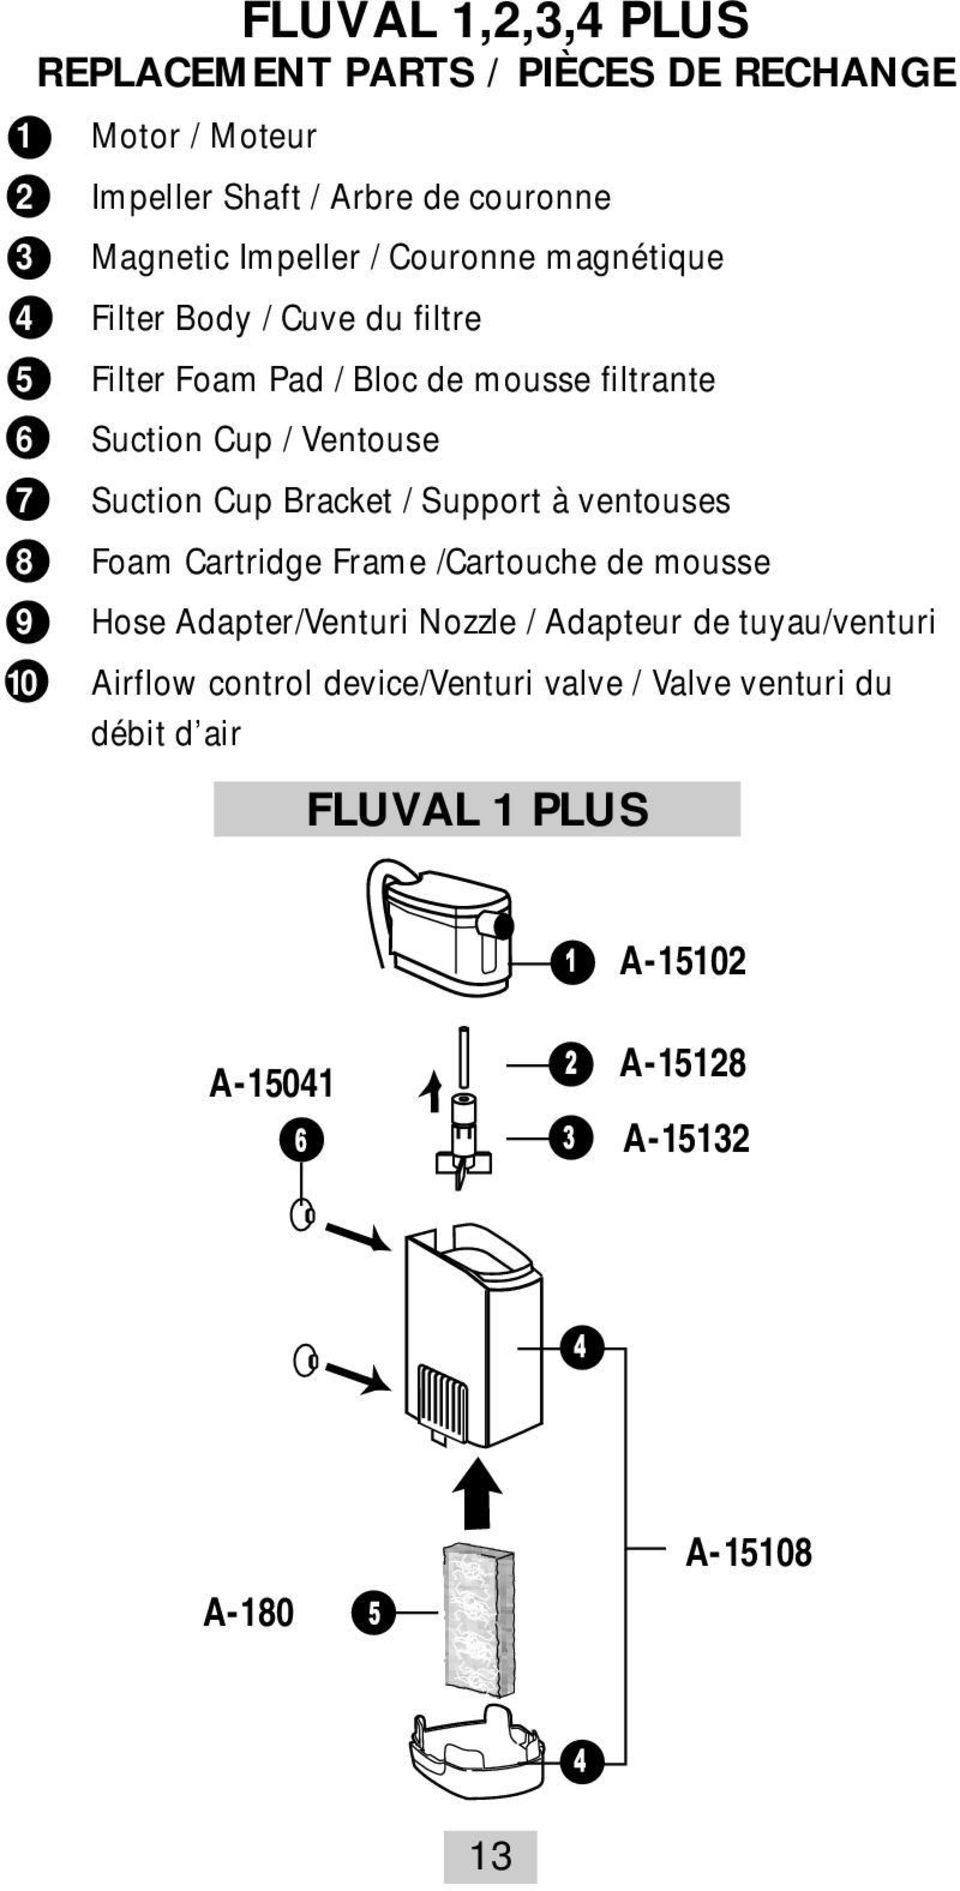 Cup Bracket / Support à ventouses 8 Foam Cartridge Frame /Cartouche de mousse 9 Hose Adapter/Venturi Nozzle / Adapteur de